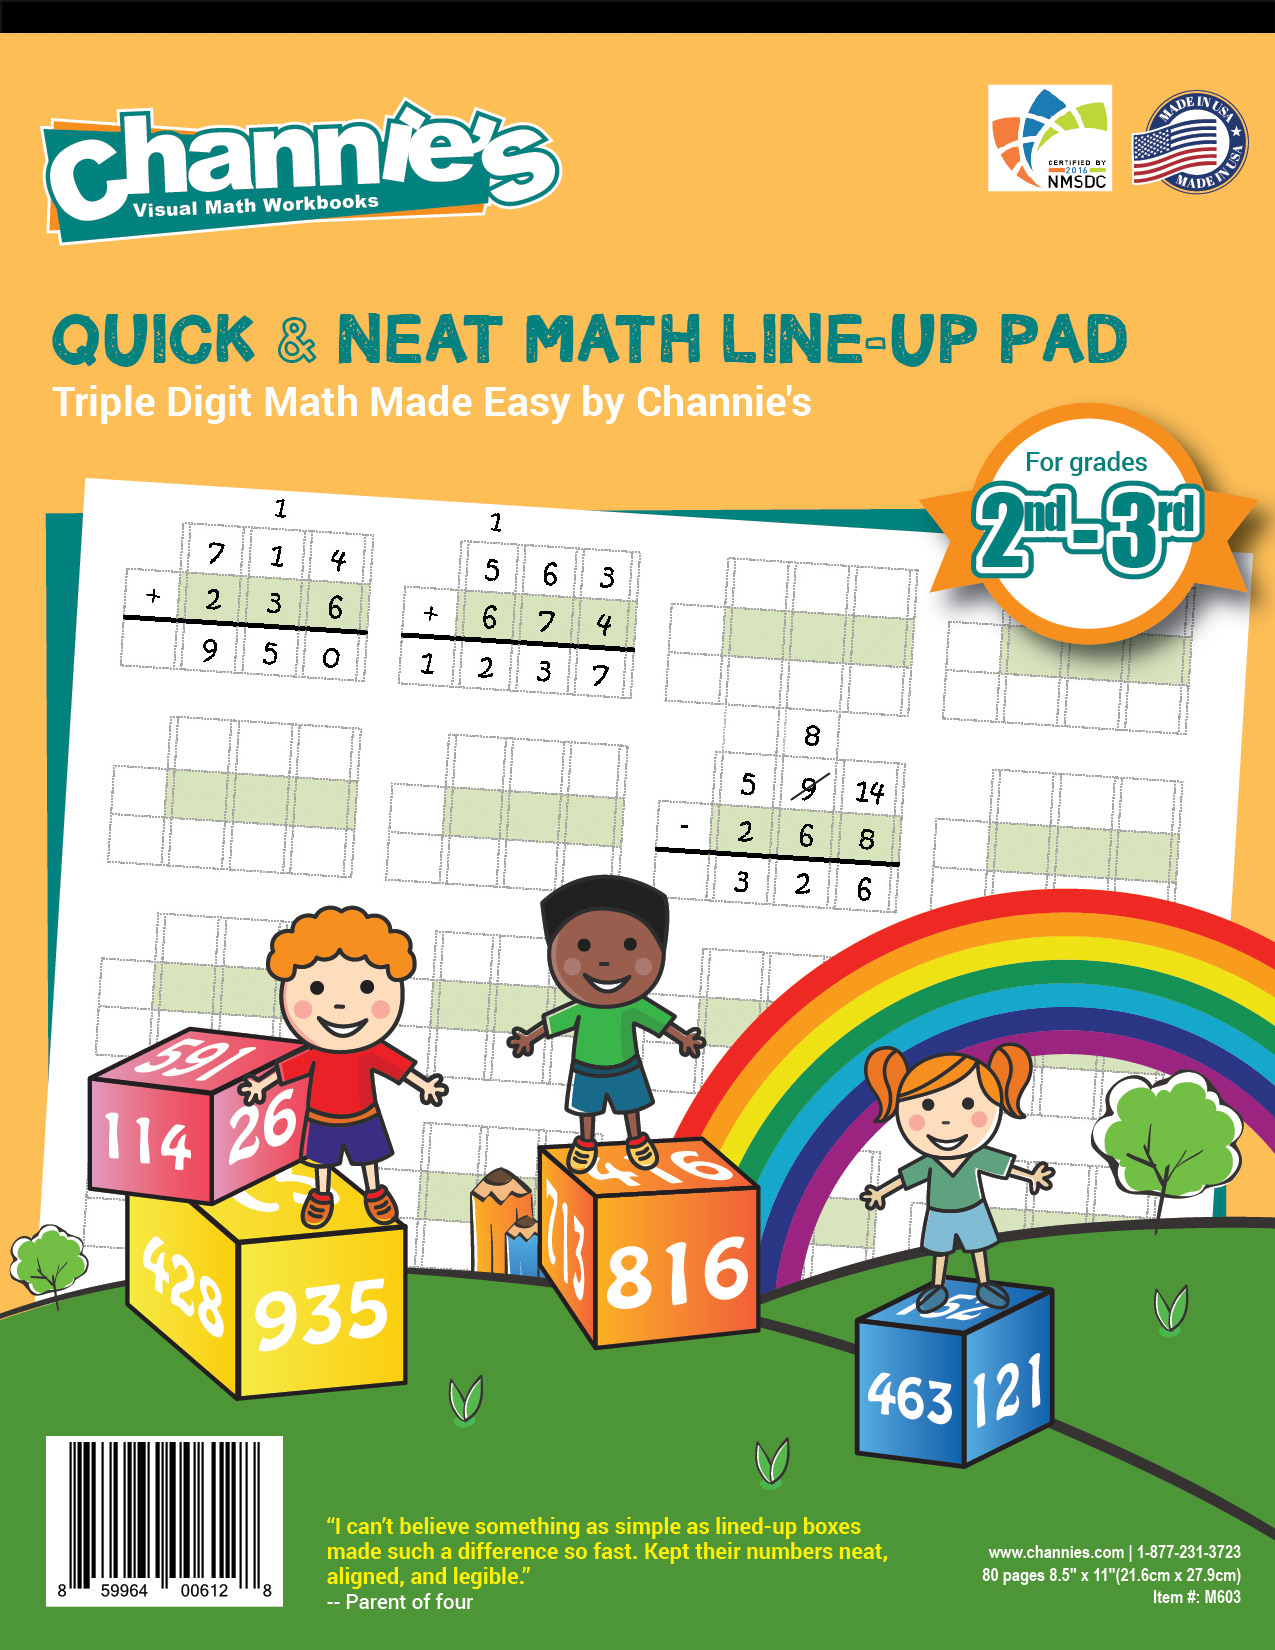 channies_quickneatmath_cover_3digit-web